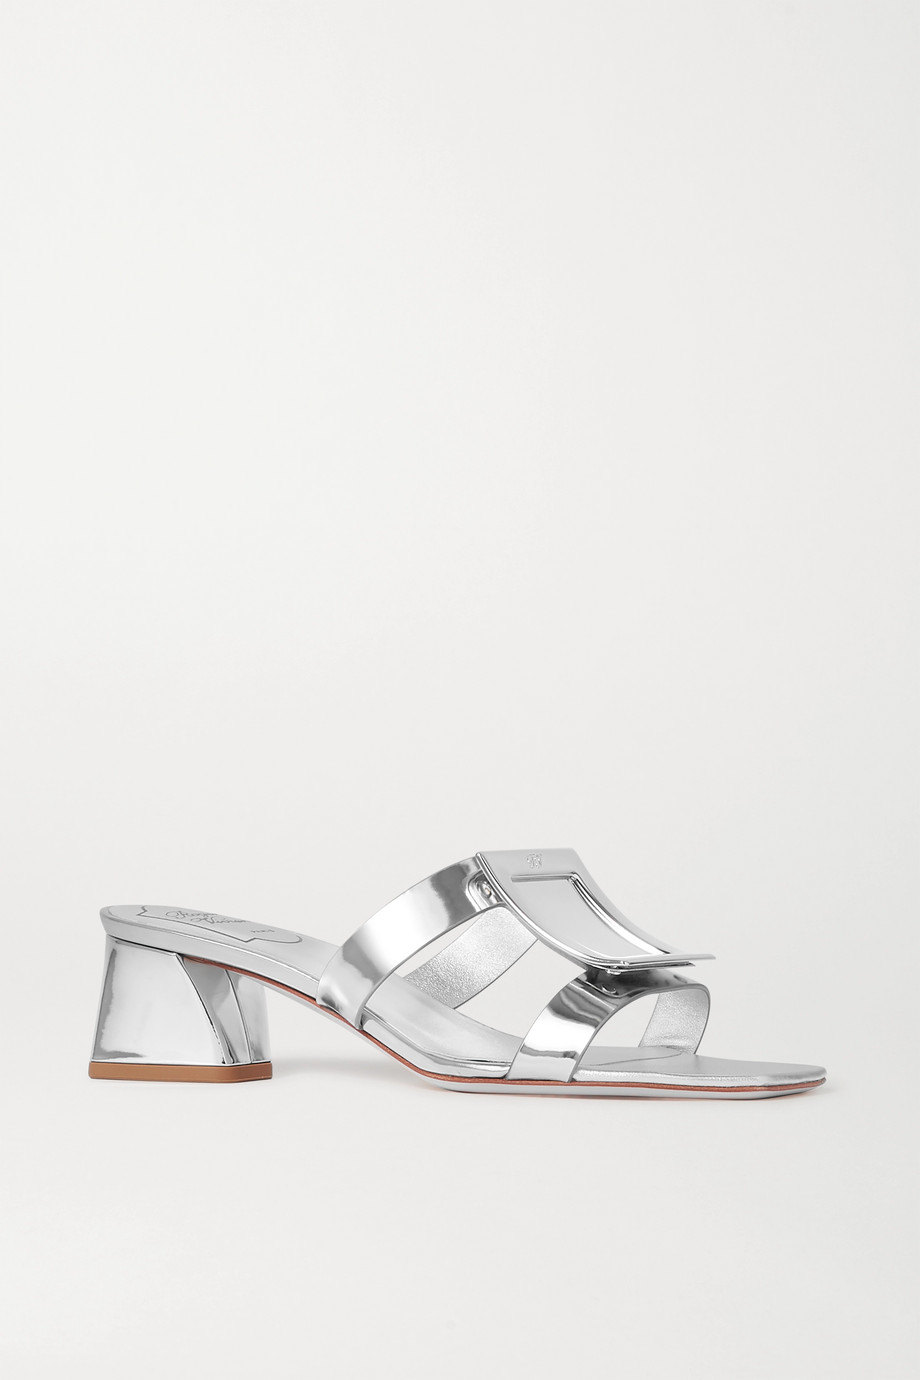 Roger Vivier Bikiviv' embellished metallic leather mules